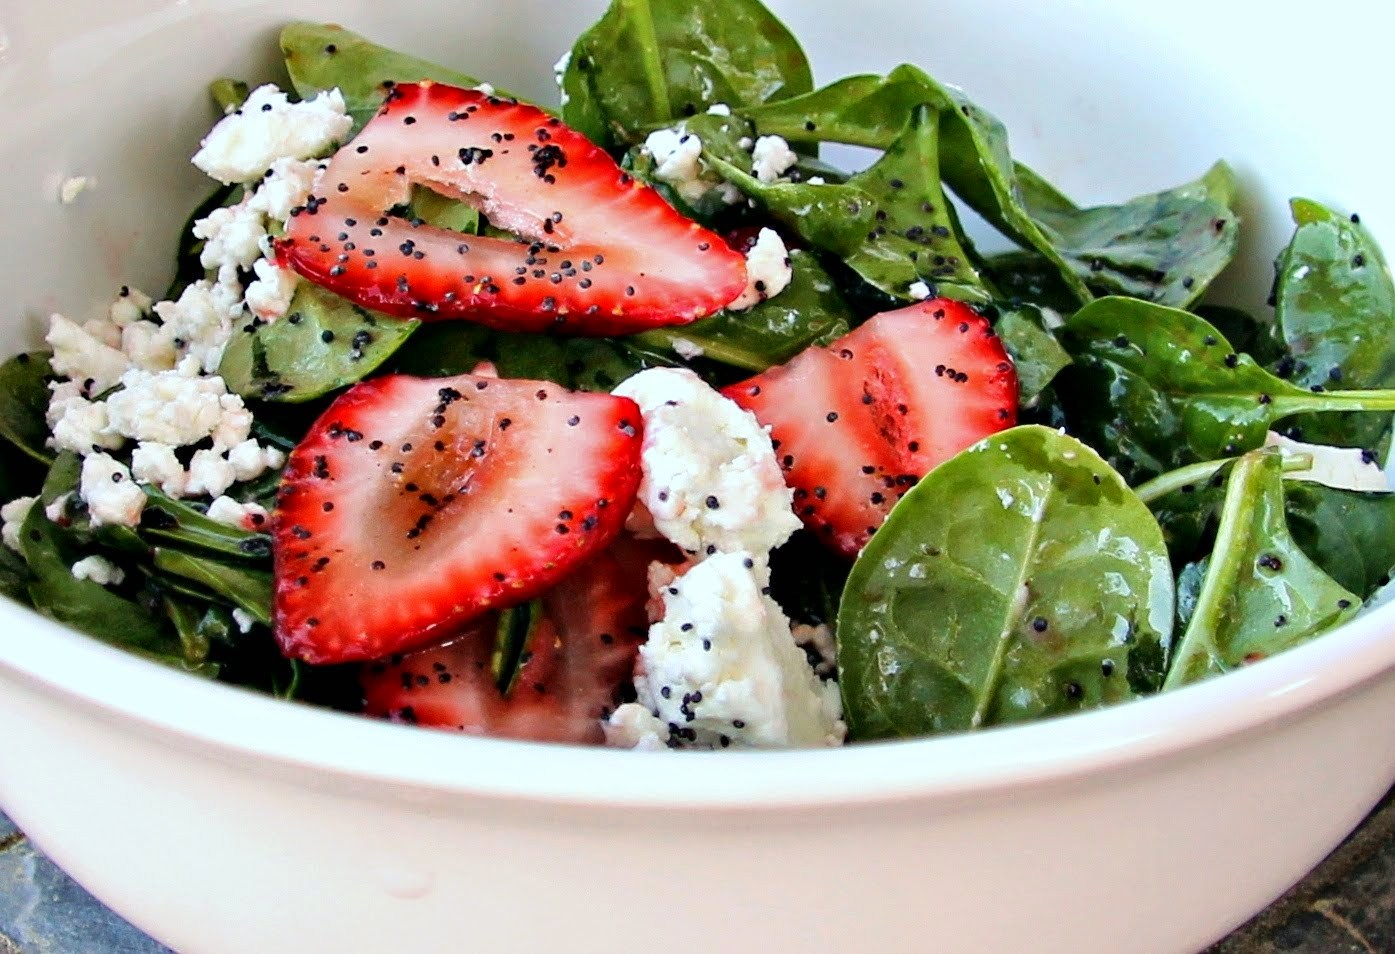 Spinach, Strawberry & Goat Cheese Salad with Poppyseed Vinaigrette